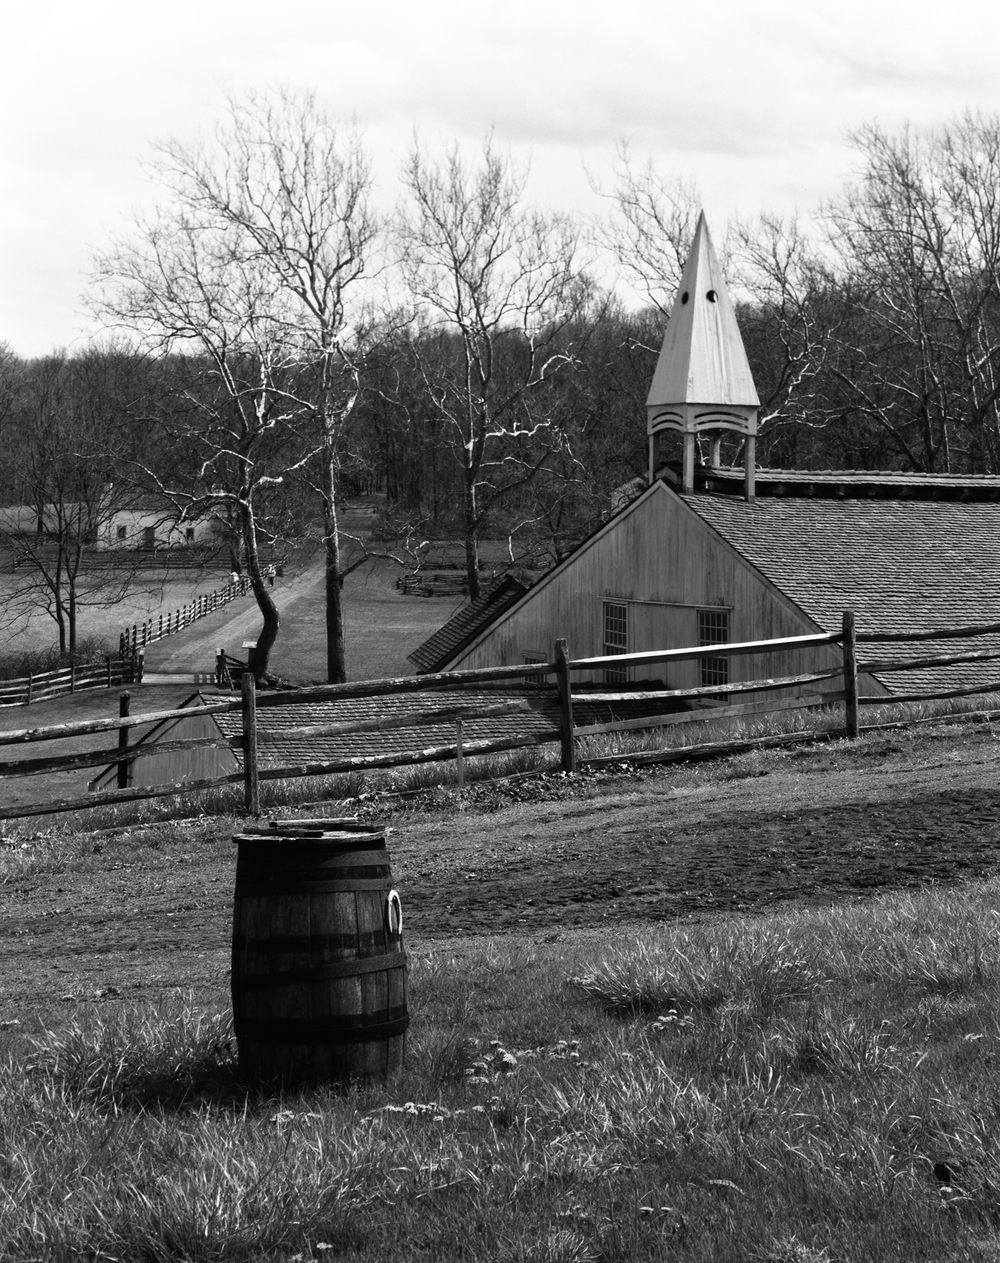 4x5_for_365_project_0127_Hopewell_Village_barrel_and_steeple.png